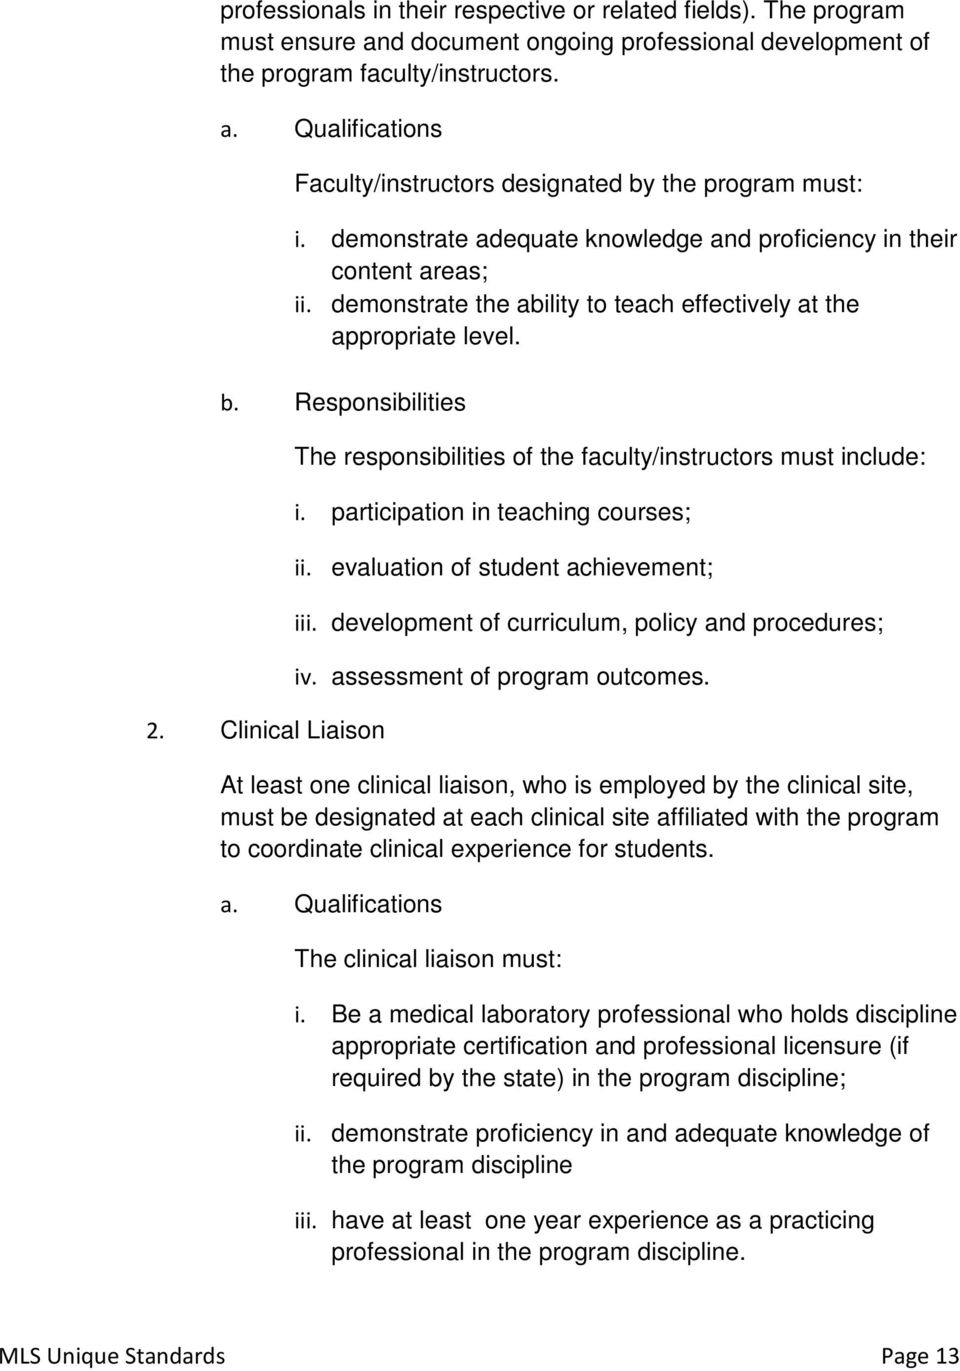 Clinical Liaison The responsibilities of the faculty/instructors must include: i. participation in teaching courses; ii. evaluation of student achievement; iii.